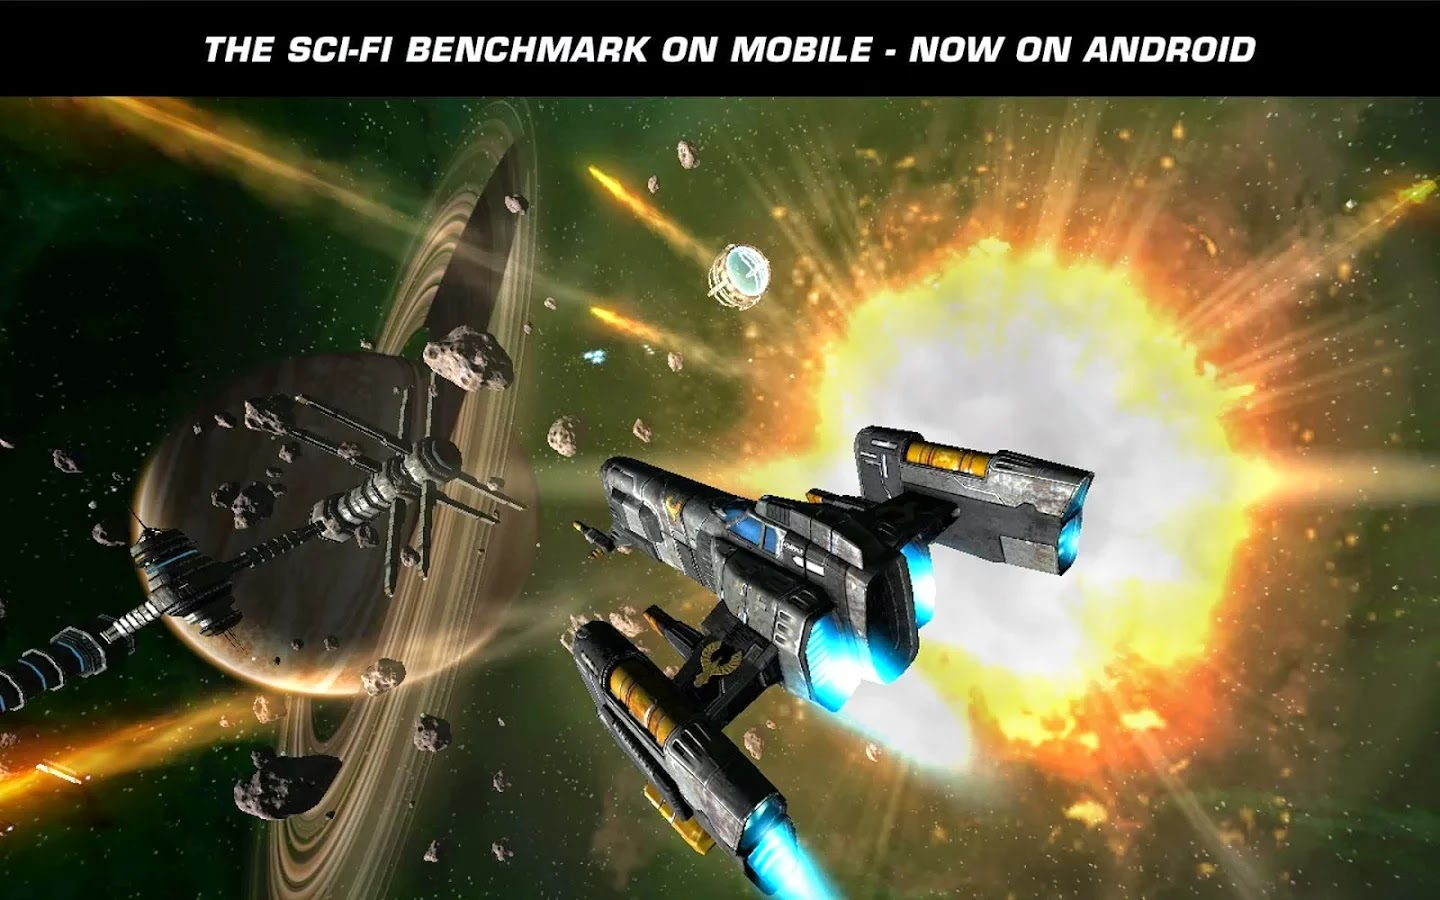 Tải Game Miễn Phí, Game Android, Ứng Dụng Android: Galaxy on Fire 2